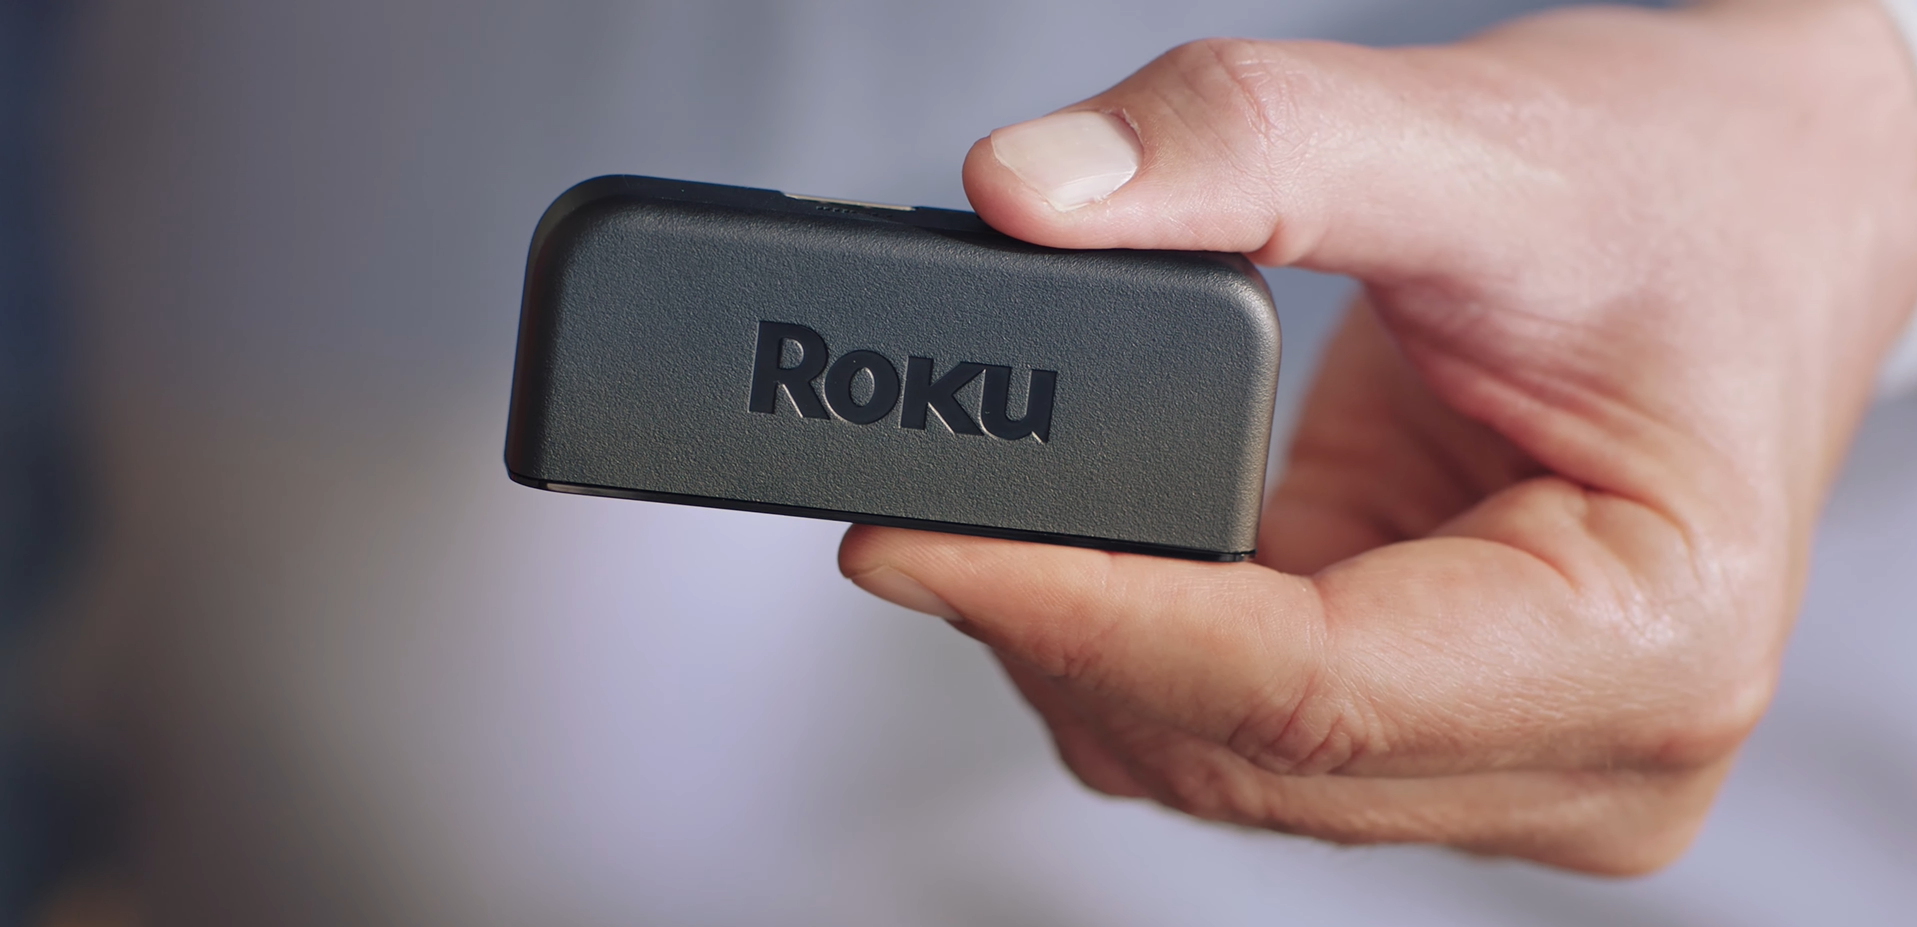 The Roku Premiere has a basic remote and no 802.11ac Wi-Fi, but it gives 4K and HDR10 video for very cheap.